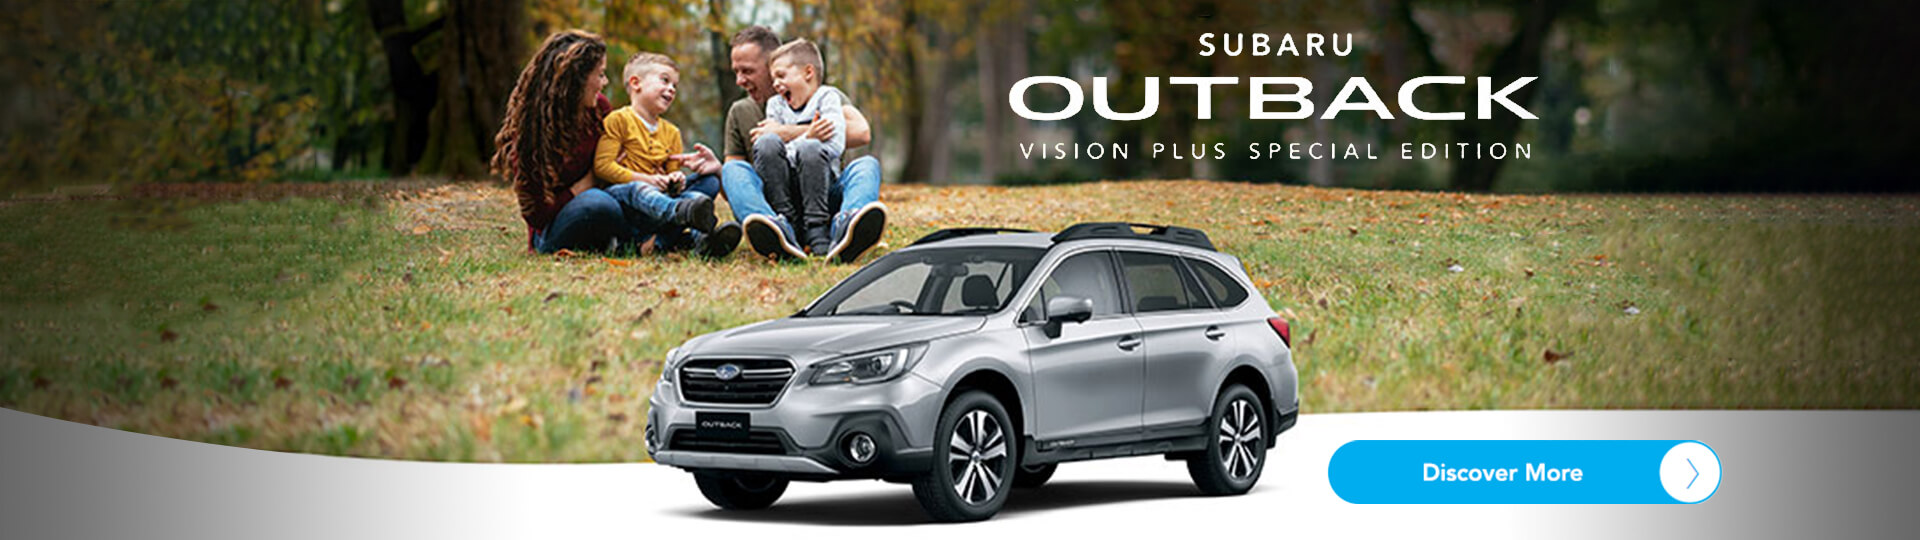 Bathurst Automotive Group subaru offers